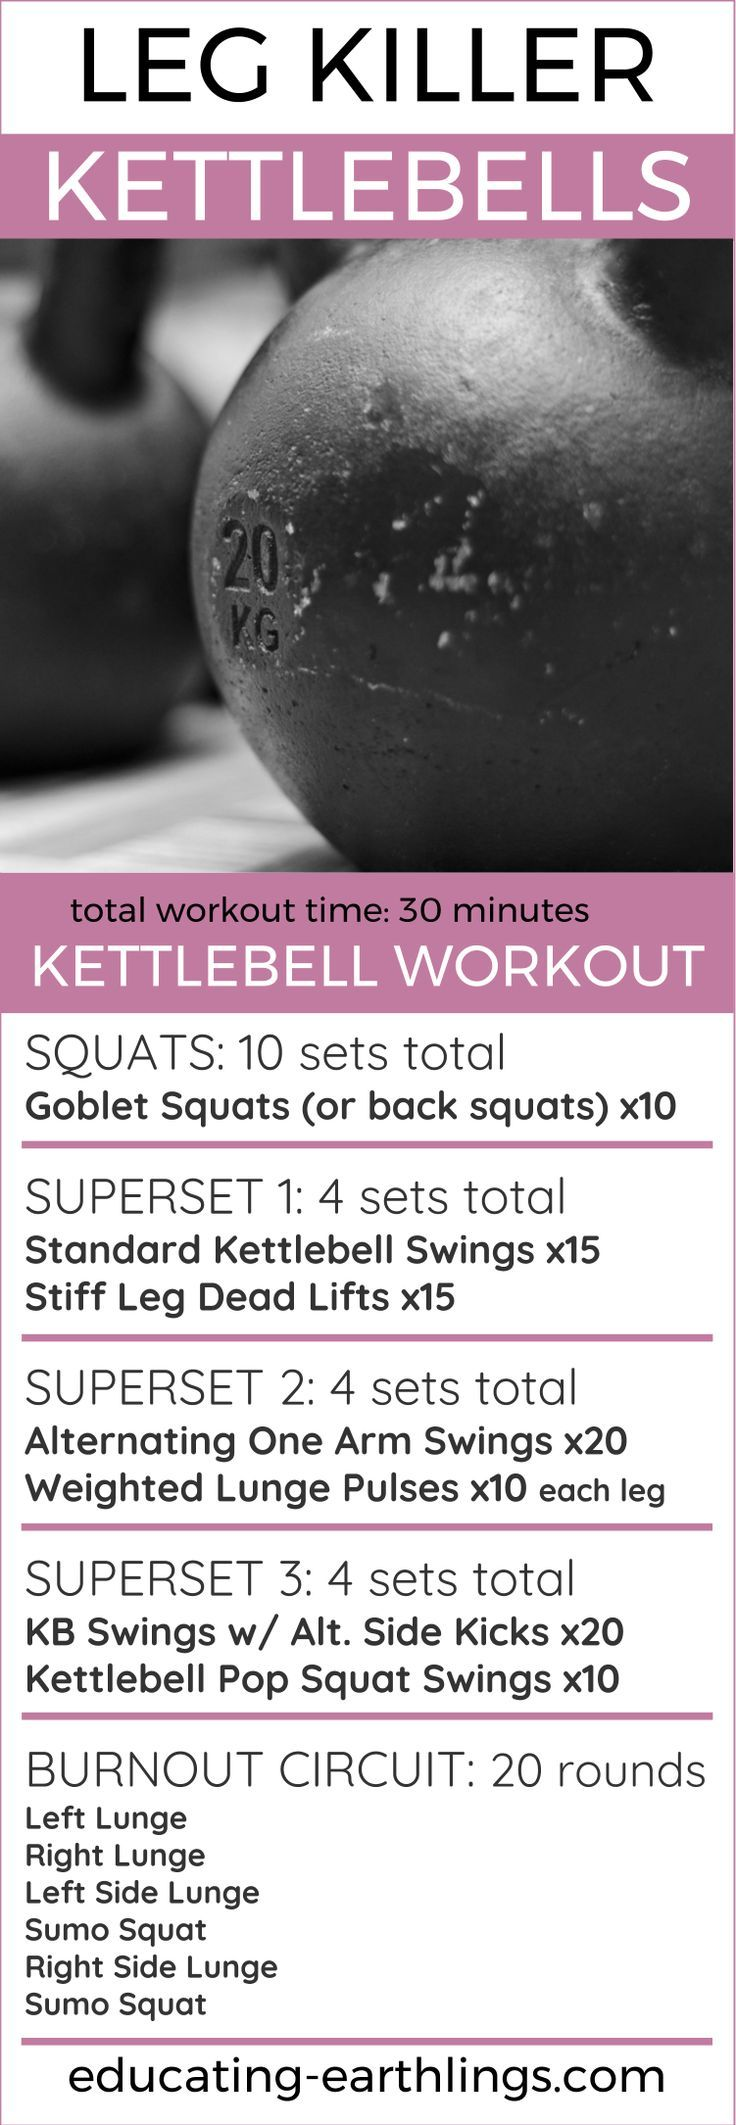 leg killer kettlebell workout, leg workout, at home workout, women's fitness, kettlebell exercises, weight loss workouts, high intensity workout, HIIT workout, HIIT kettlebell workout, HIIT leg workout, Bodyweight workouts, muscle building, bodybuilding, vegan bodybuilding